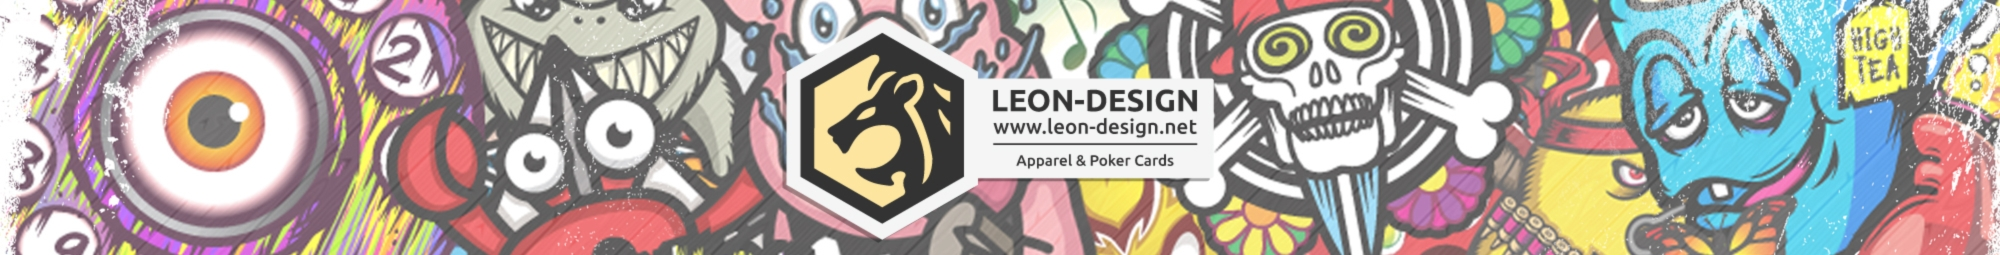 Showroom - leondesigns